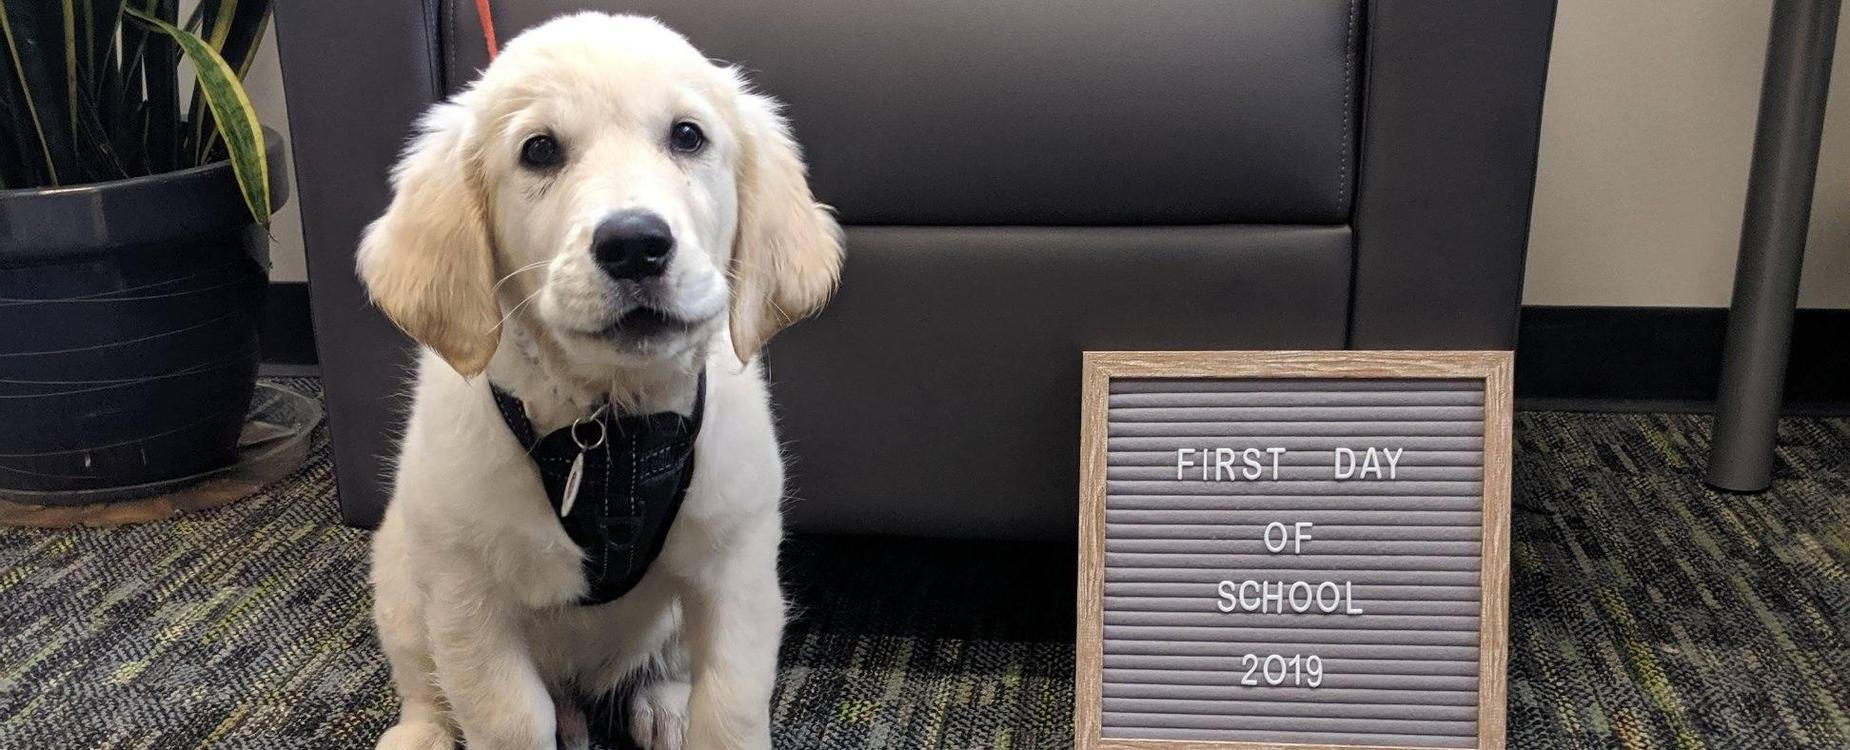 Winston's First Day